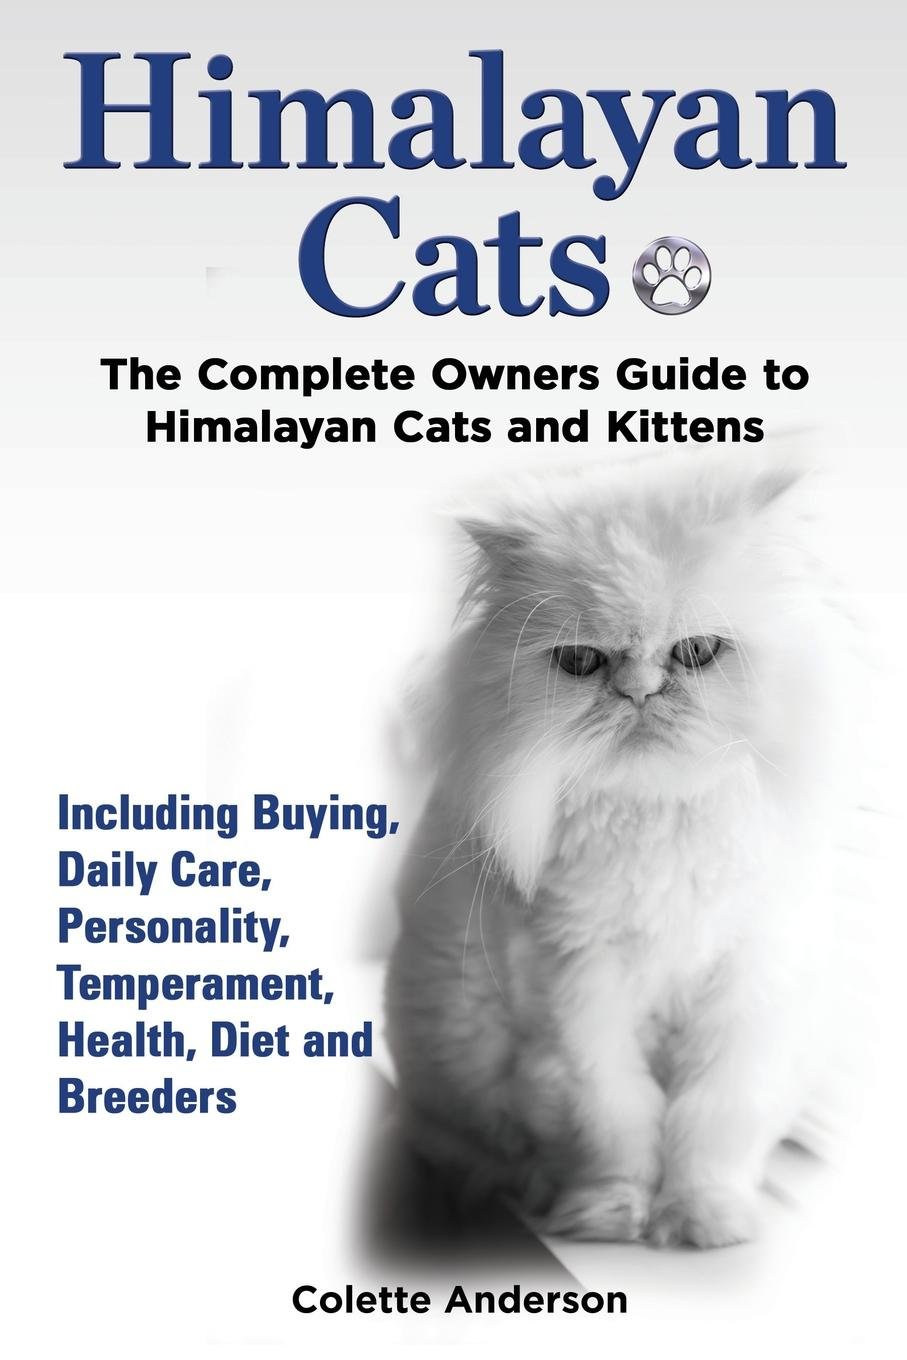 Read Online Himalayan Cats, The Complete Owners Guide to Himalayan Cats and Kittens  Including Buying, Daily Care, Personality, Temperament, Health, Diet and Breeders ebook